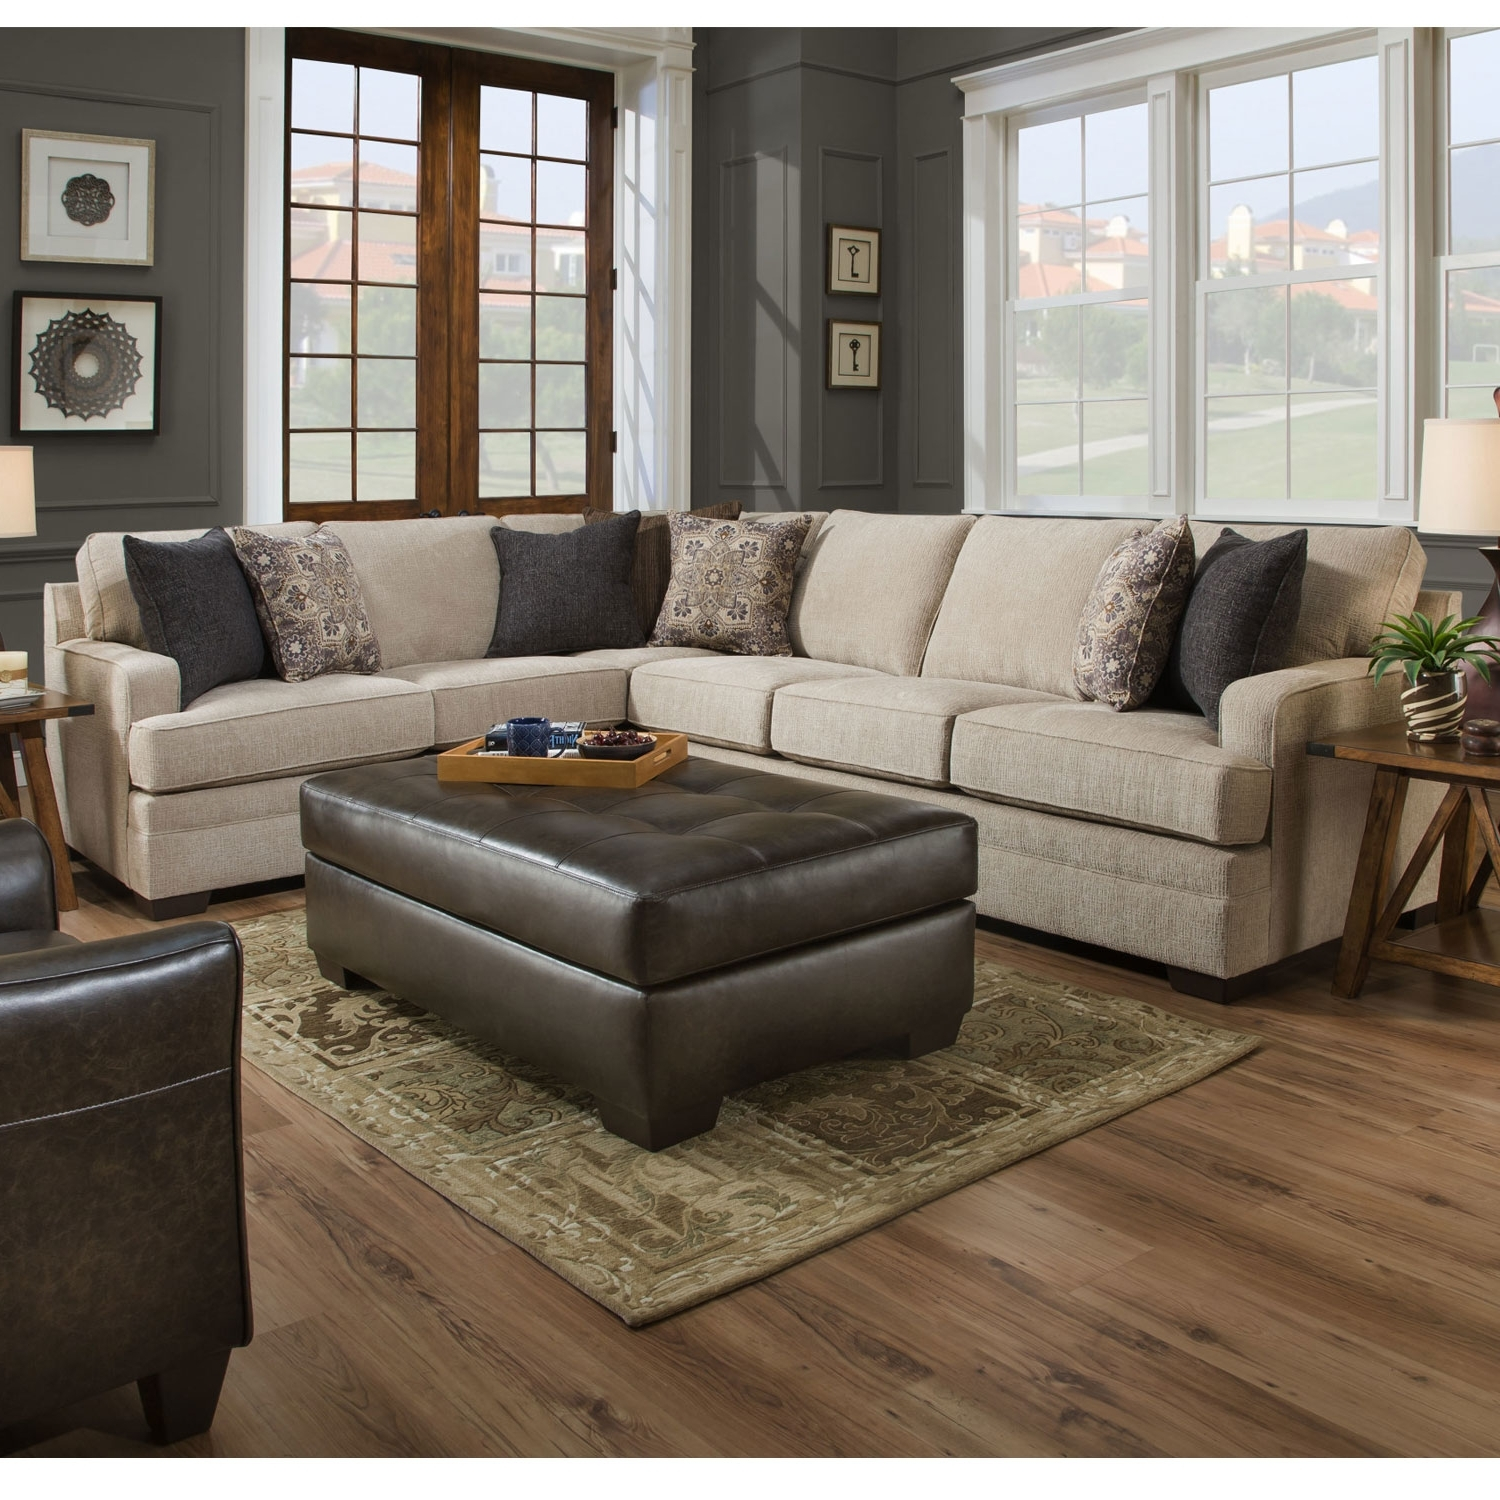 Fashionable Simmons Sectional Sofas Intended For Simmons 9165br Macy Sand Sectional Sofa (View 16 of 20)